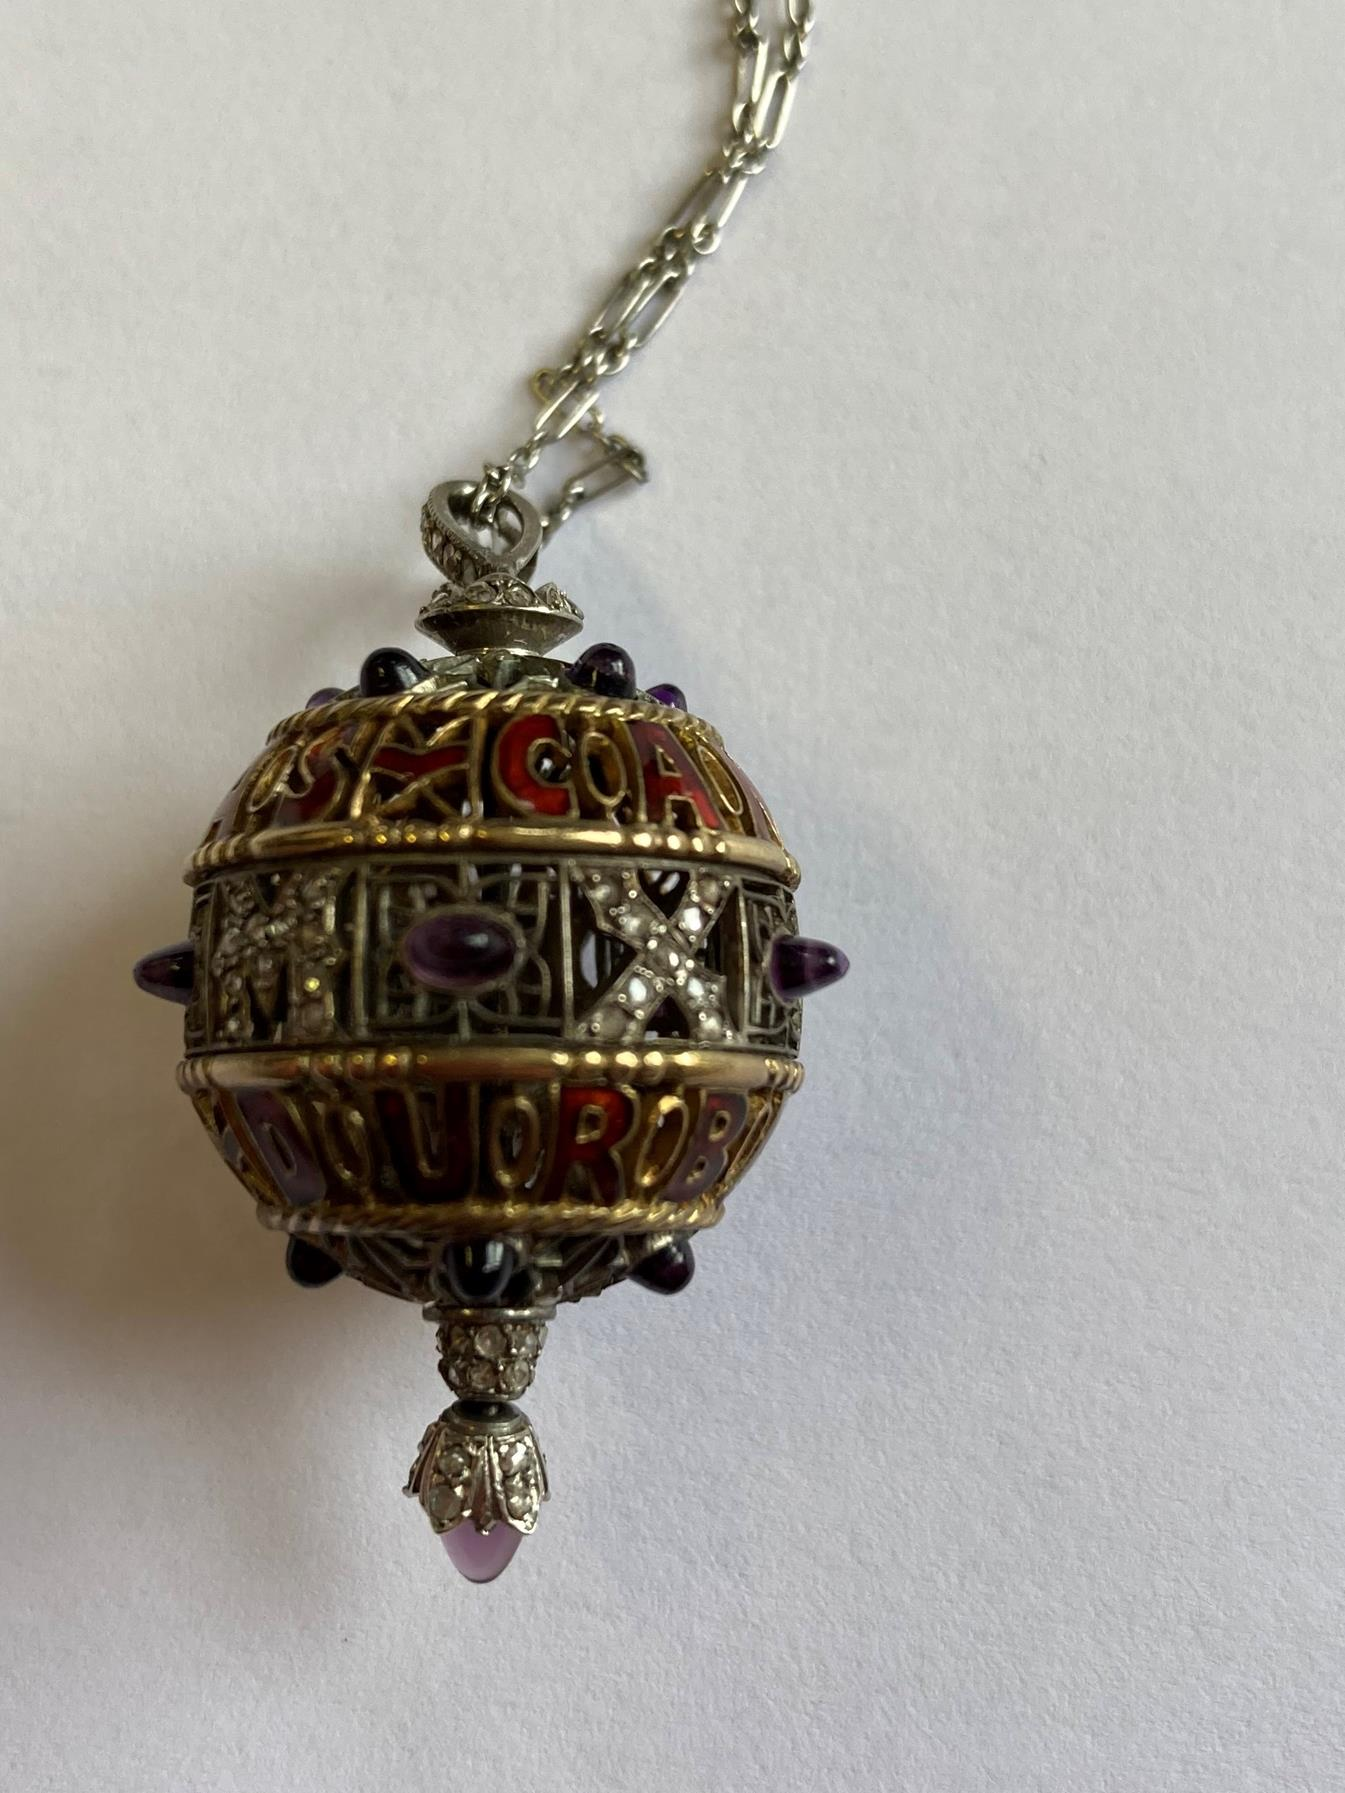 An Amethyst, Diamond and Enamel Pendant on Chain, 1911, the openwork ball with red enamel - Image 4 of 8